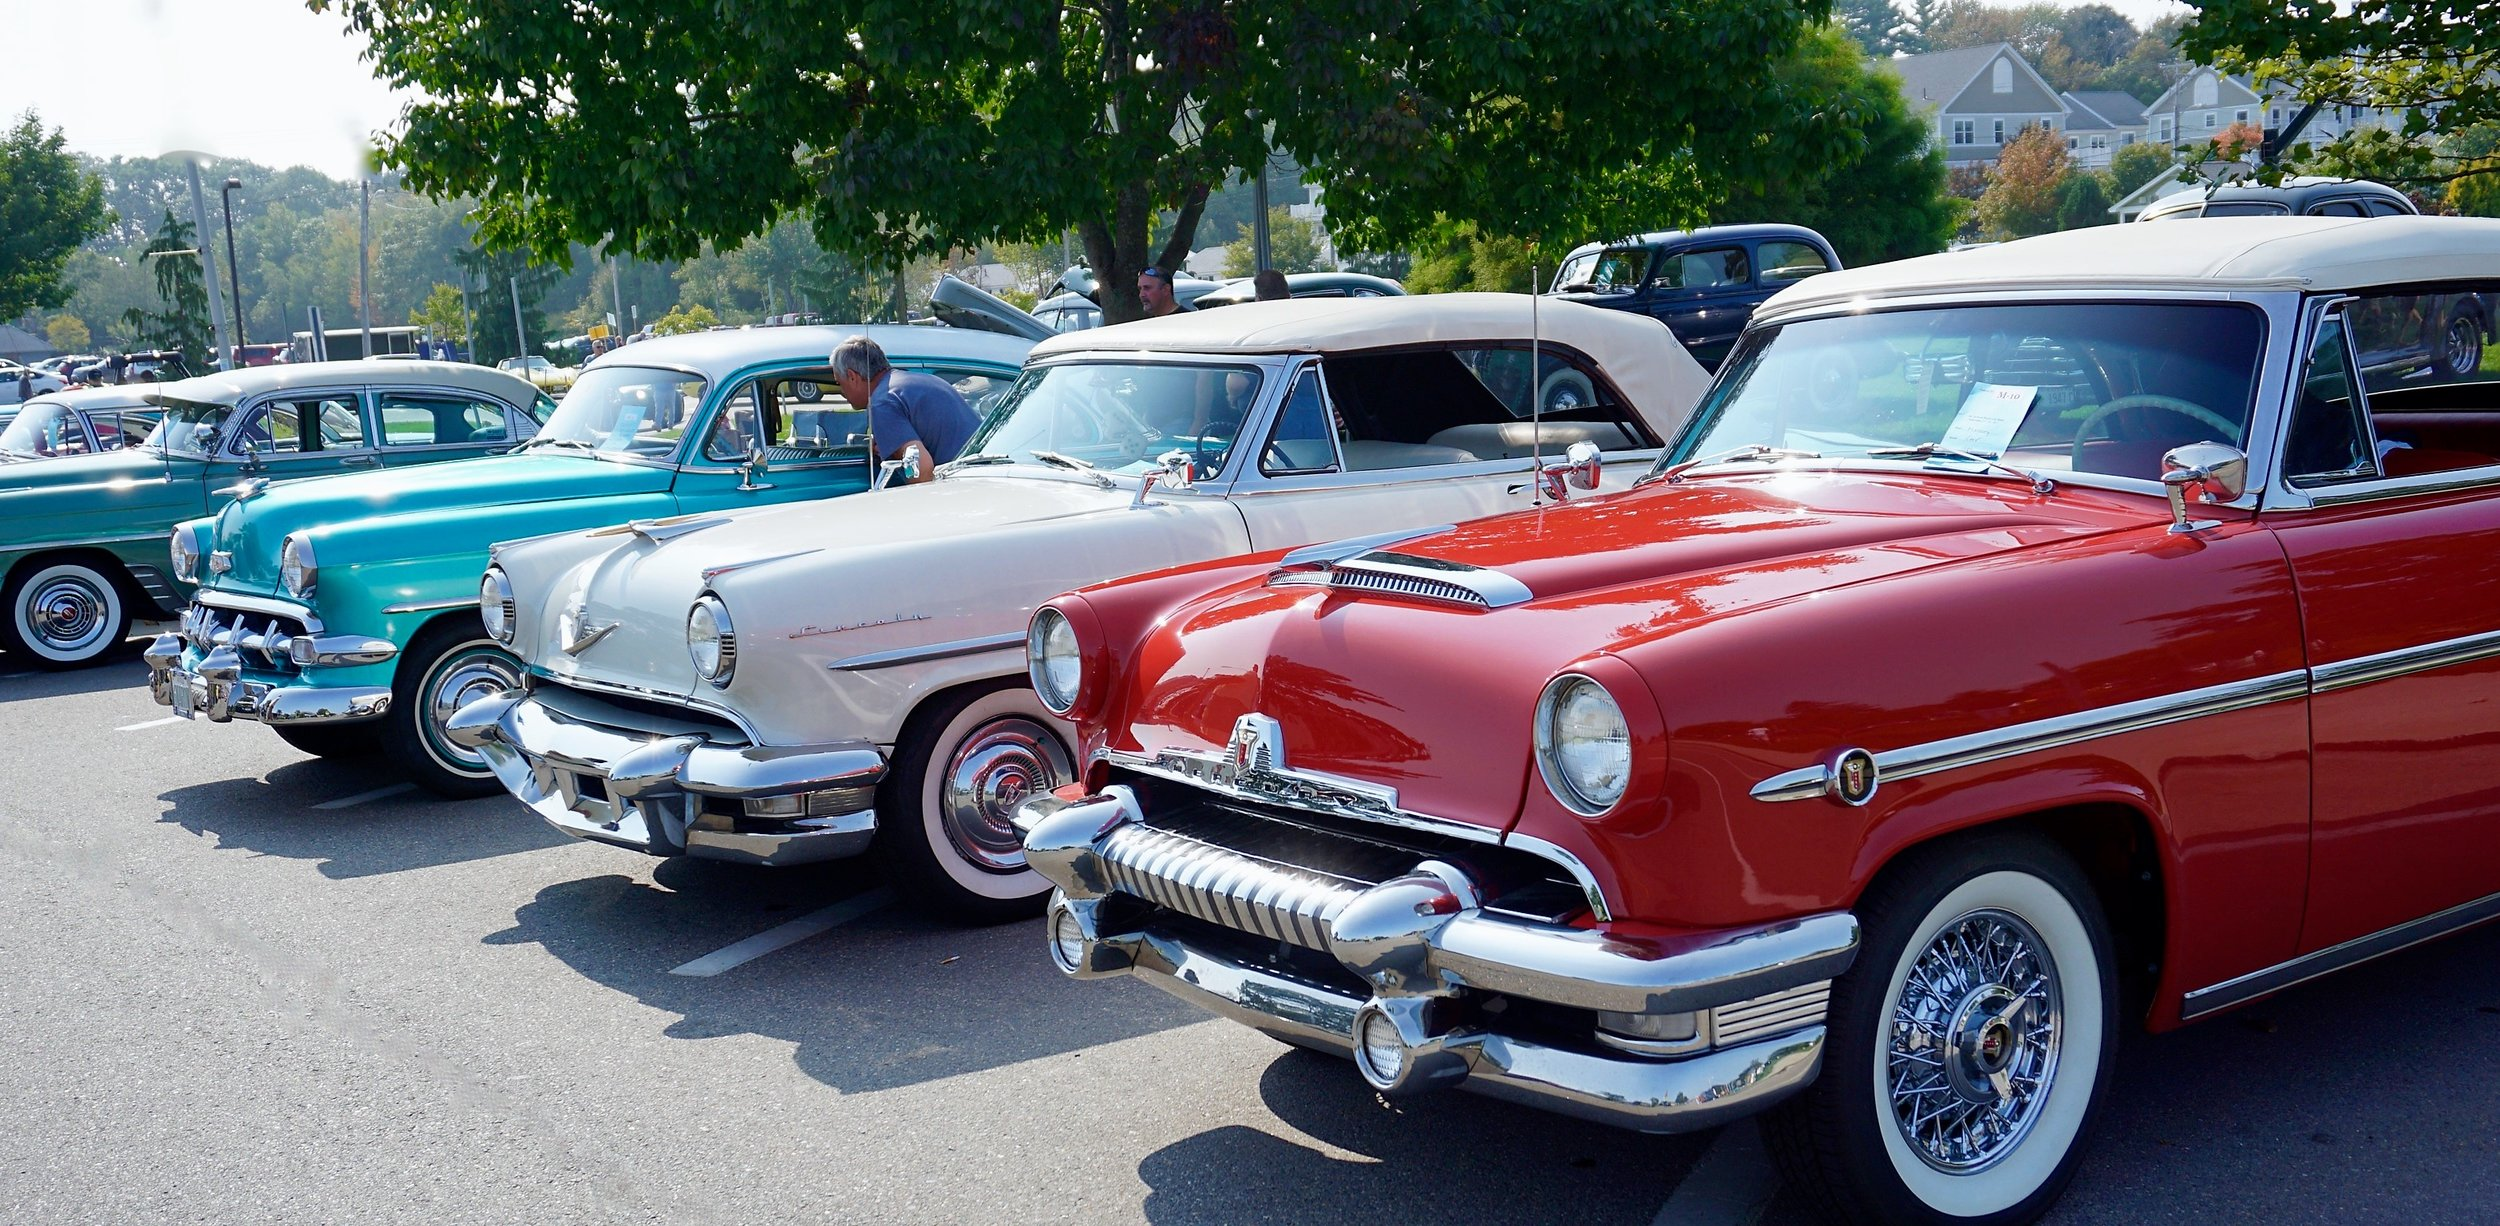 4PM - 6PM: Vintage Car Show - Village Chapel. Cruise in and have fun! Also enjoy live Gospel by Worship Pastor Tony Eads and The Pulaski Church of God during the car show and a cookout! -